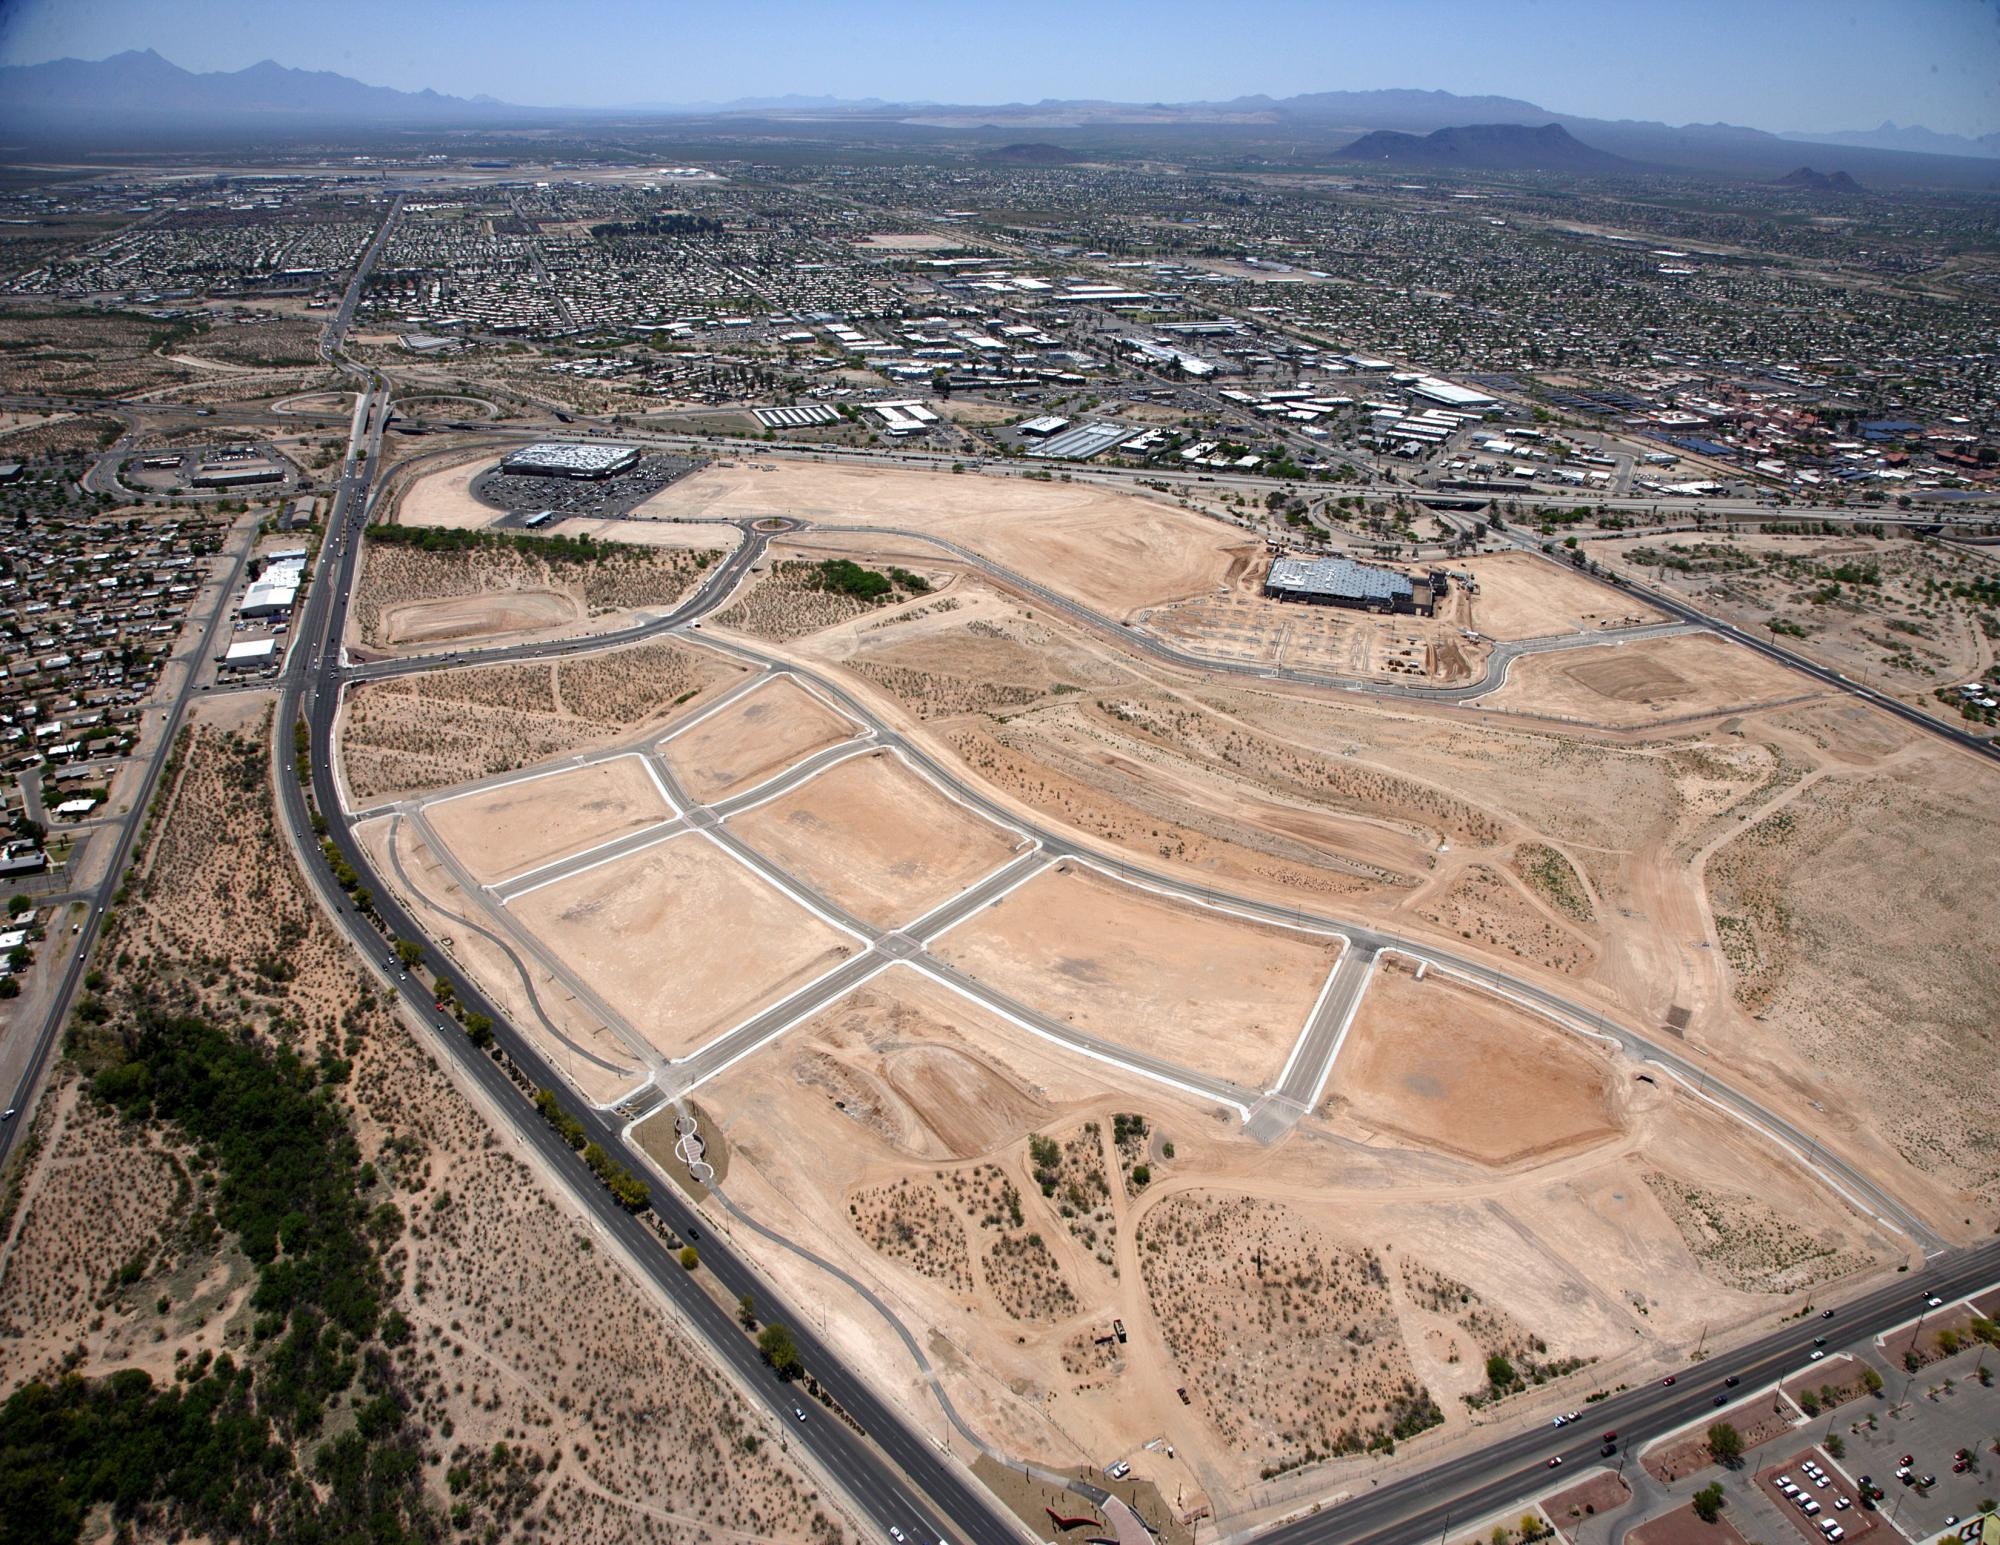 The Bridges, a master-planned, 350-acre mixed-use development in south central Tucson, won a silver award for Public-Private Partnerships.